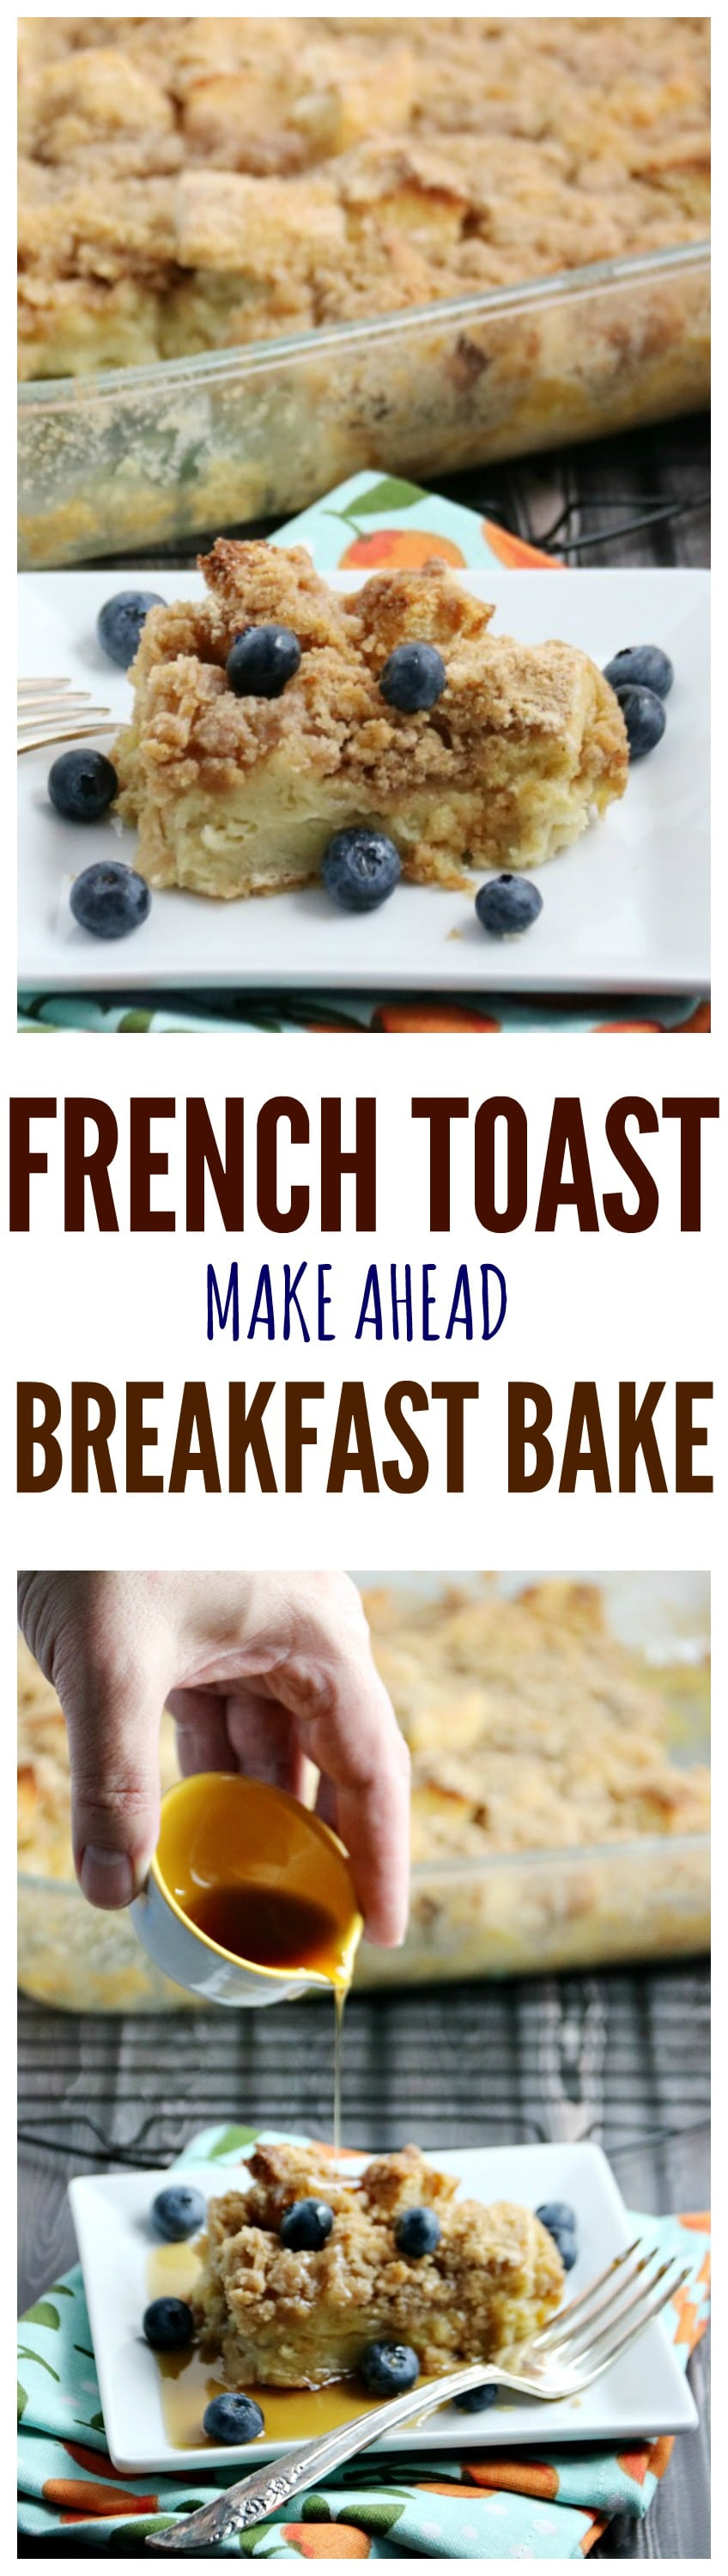 Overnight French Toast Breakfast Bake